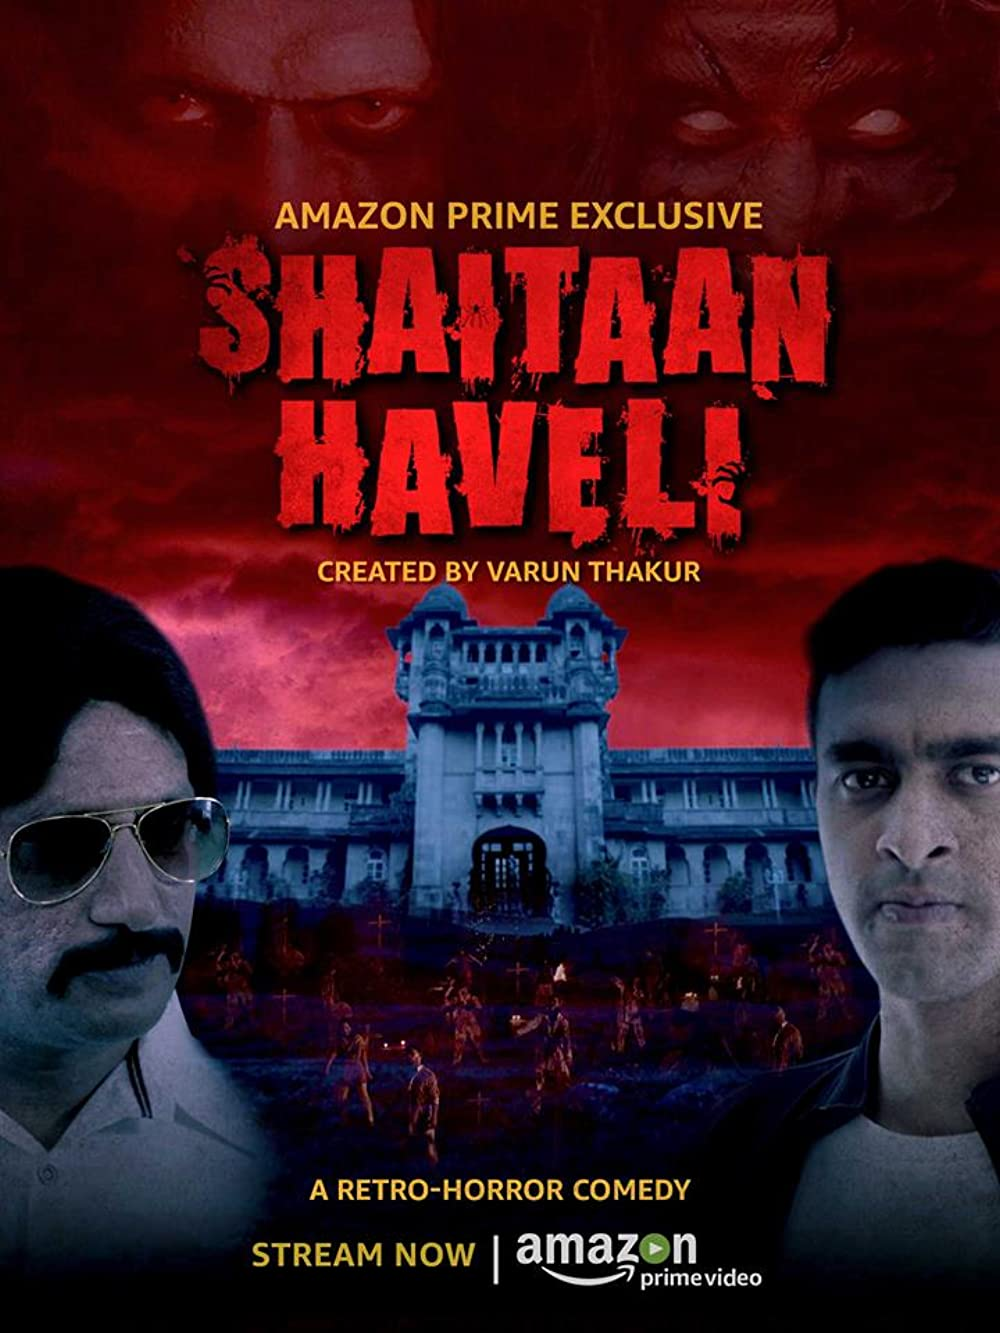 Shaitaan Haveli 2018 S01 Hindi AMZN Original Complete Web Series 720p HDRip 1.3GB Download